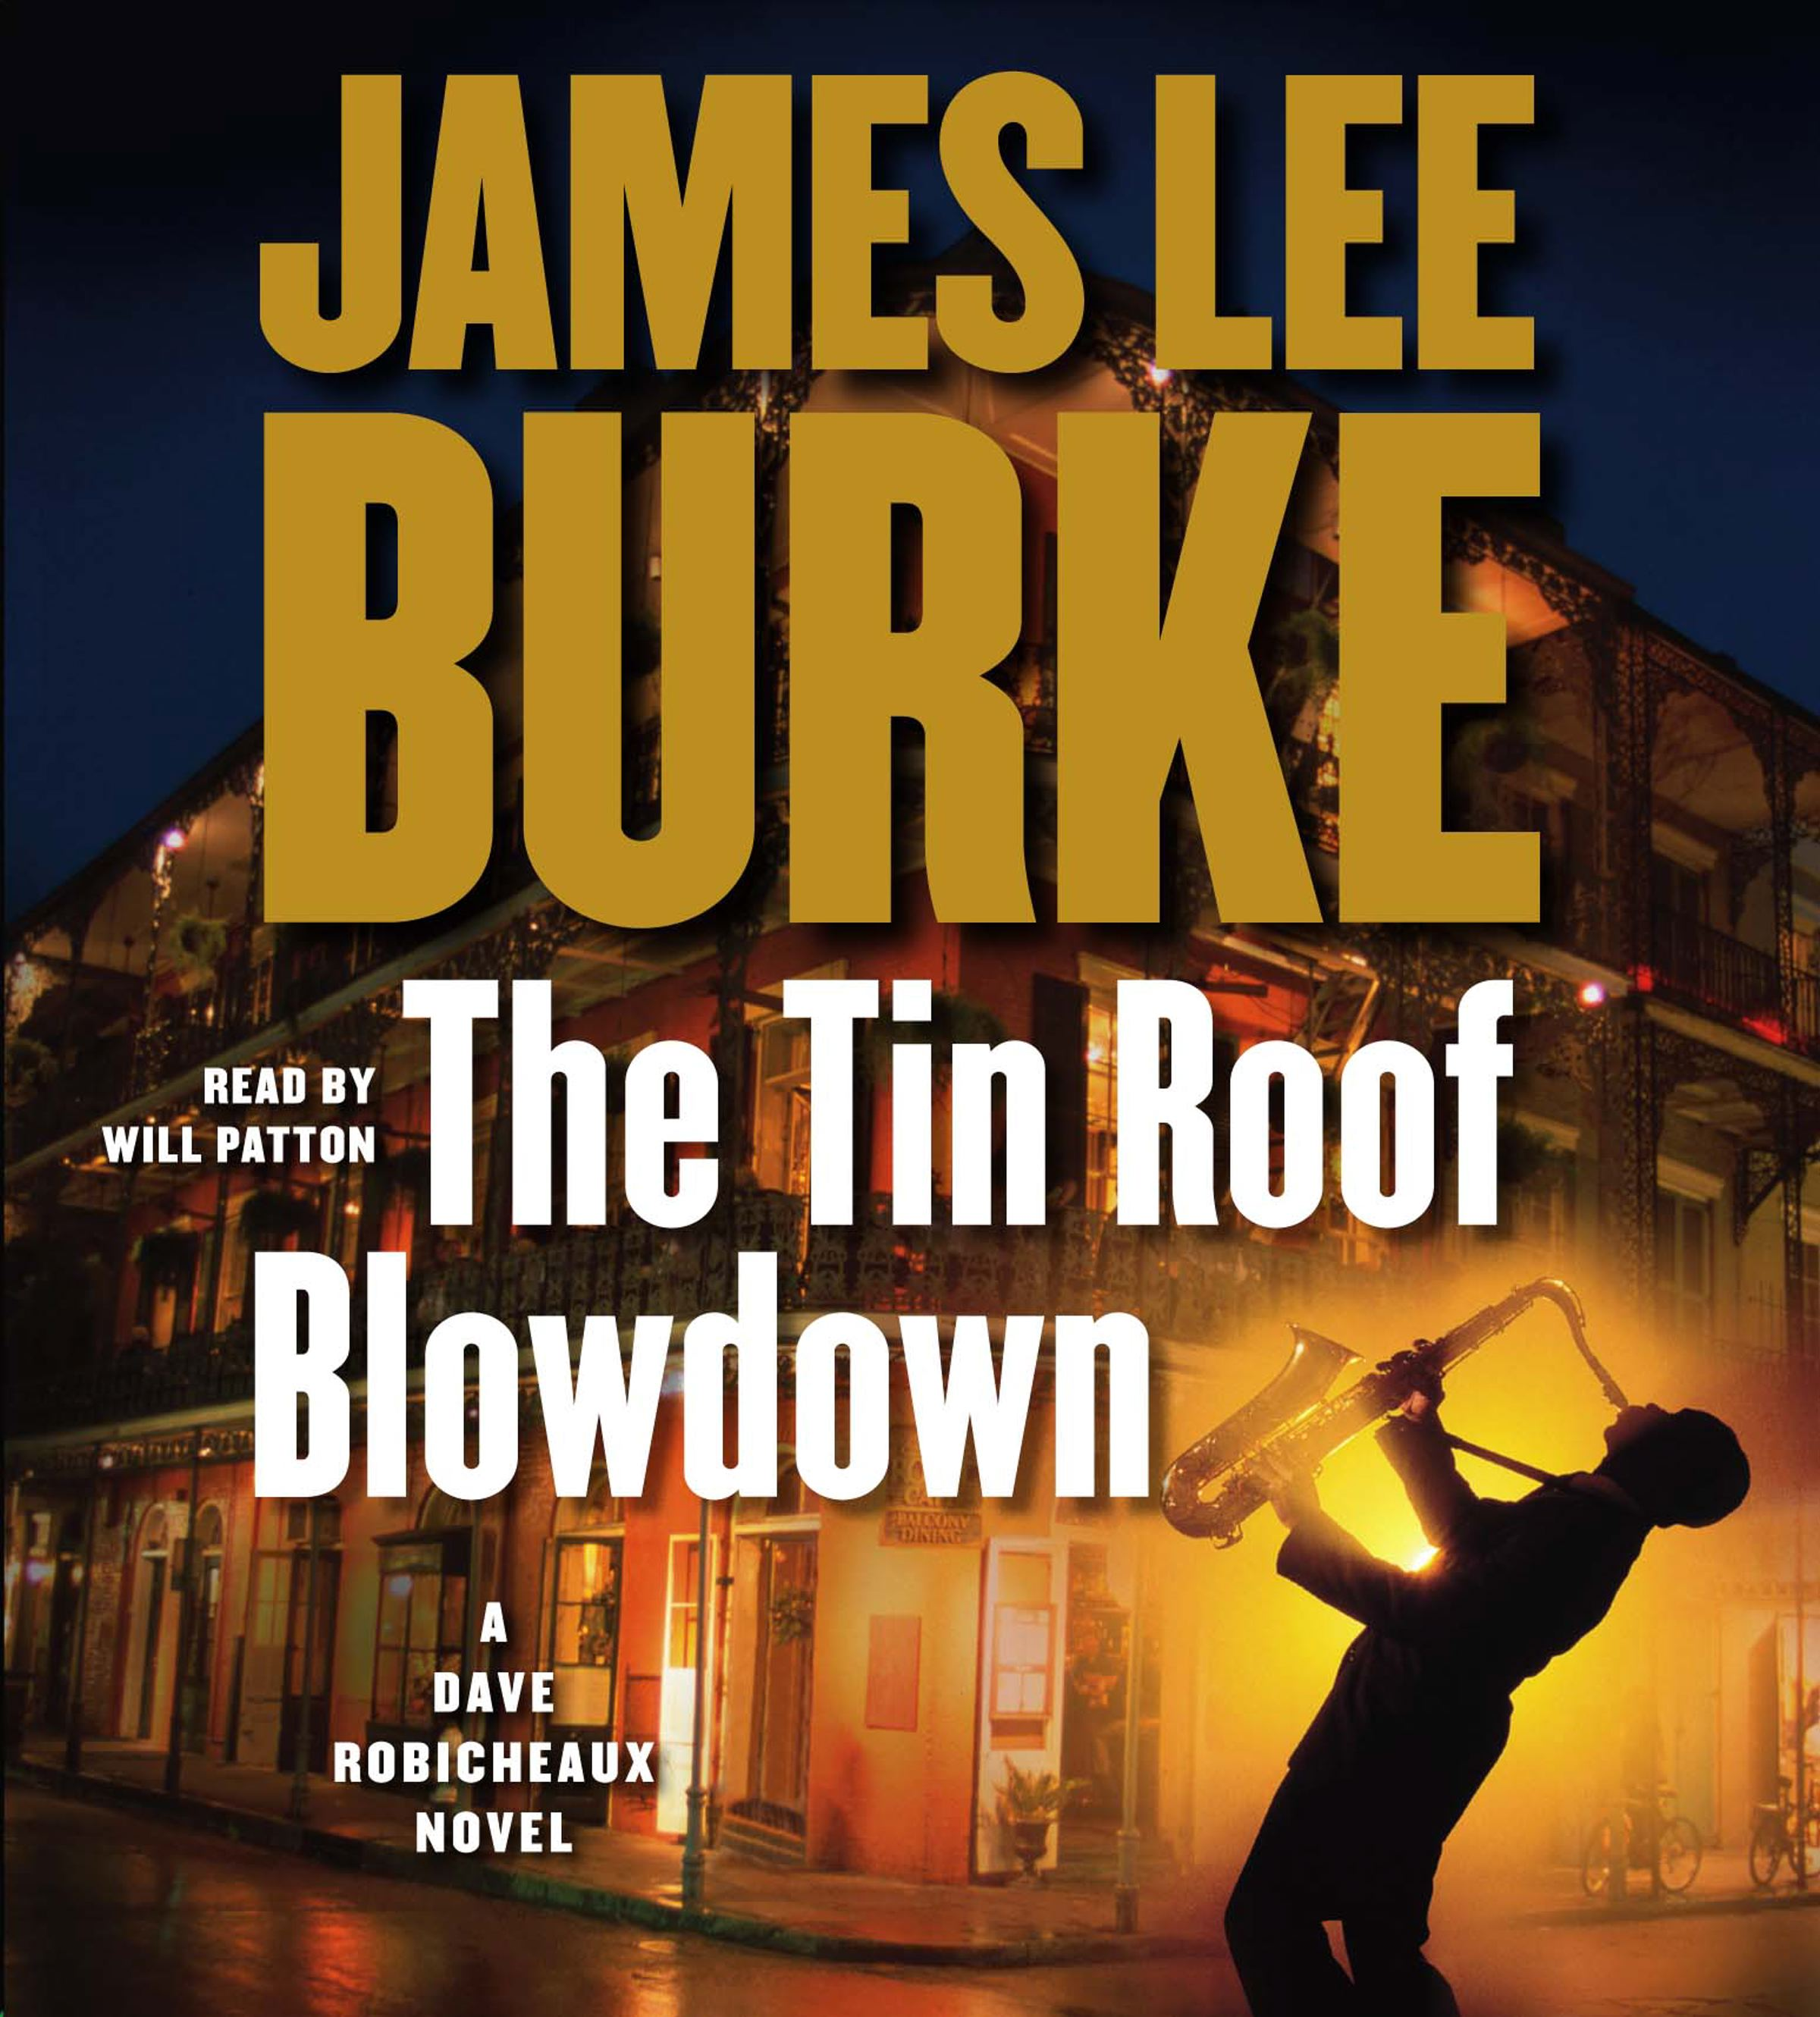 The Tin Roof Blowdown Audiobook By James Lee Burke Will